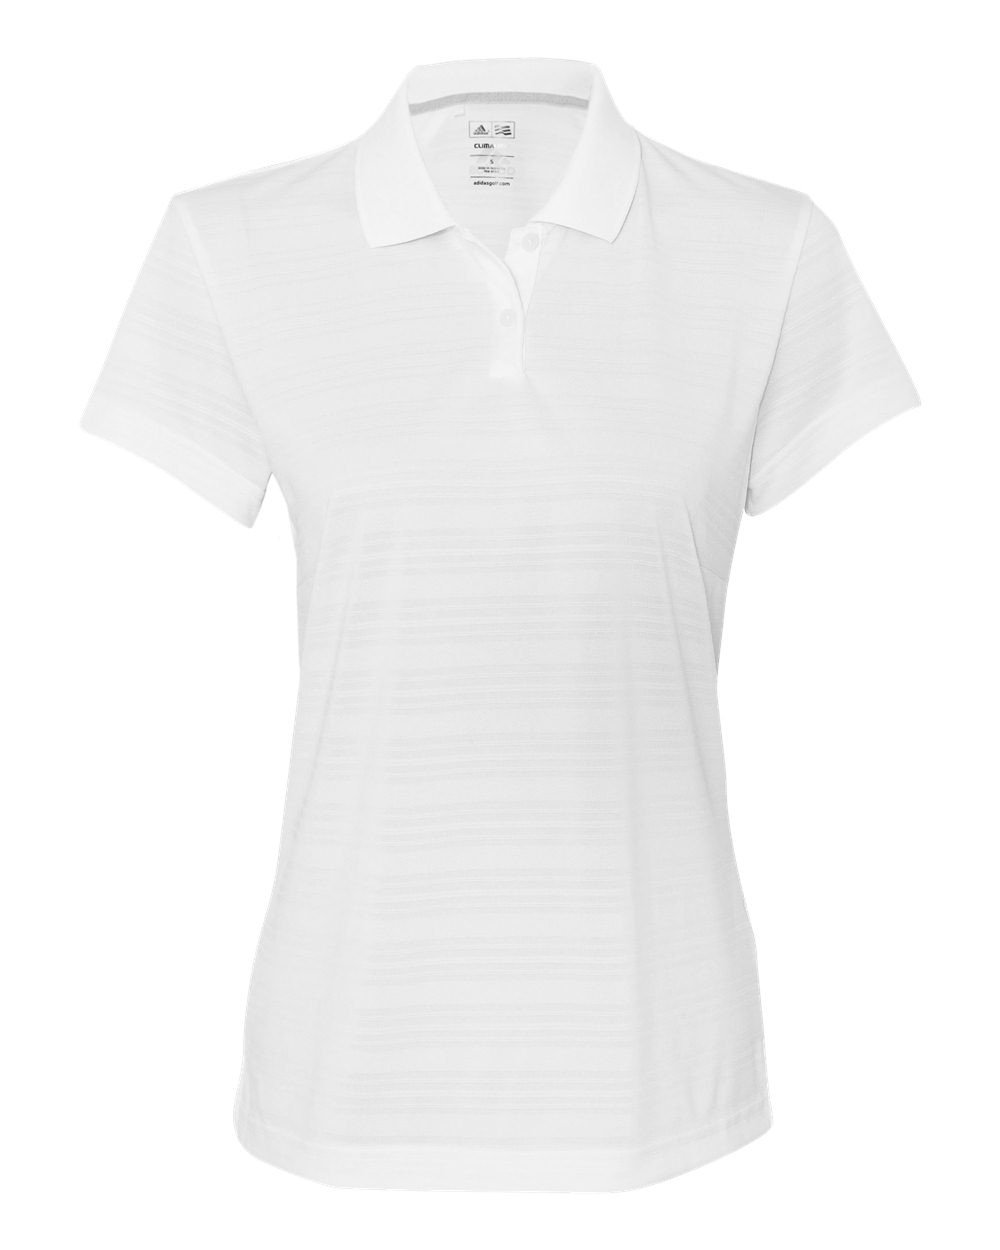 adidas Golf Womens Climalite Textured Short-Sleeve Polo (A162) -White -S